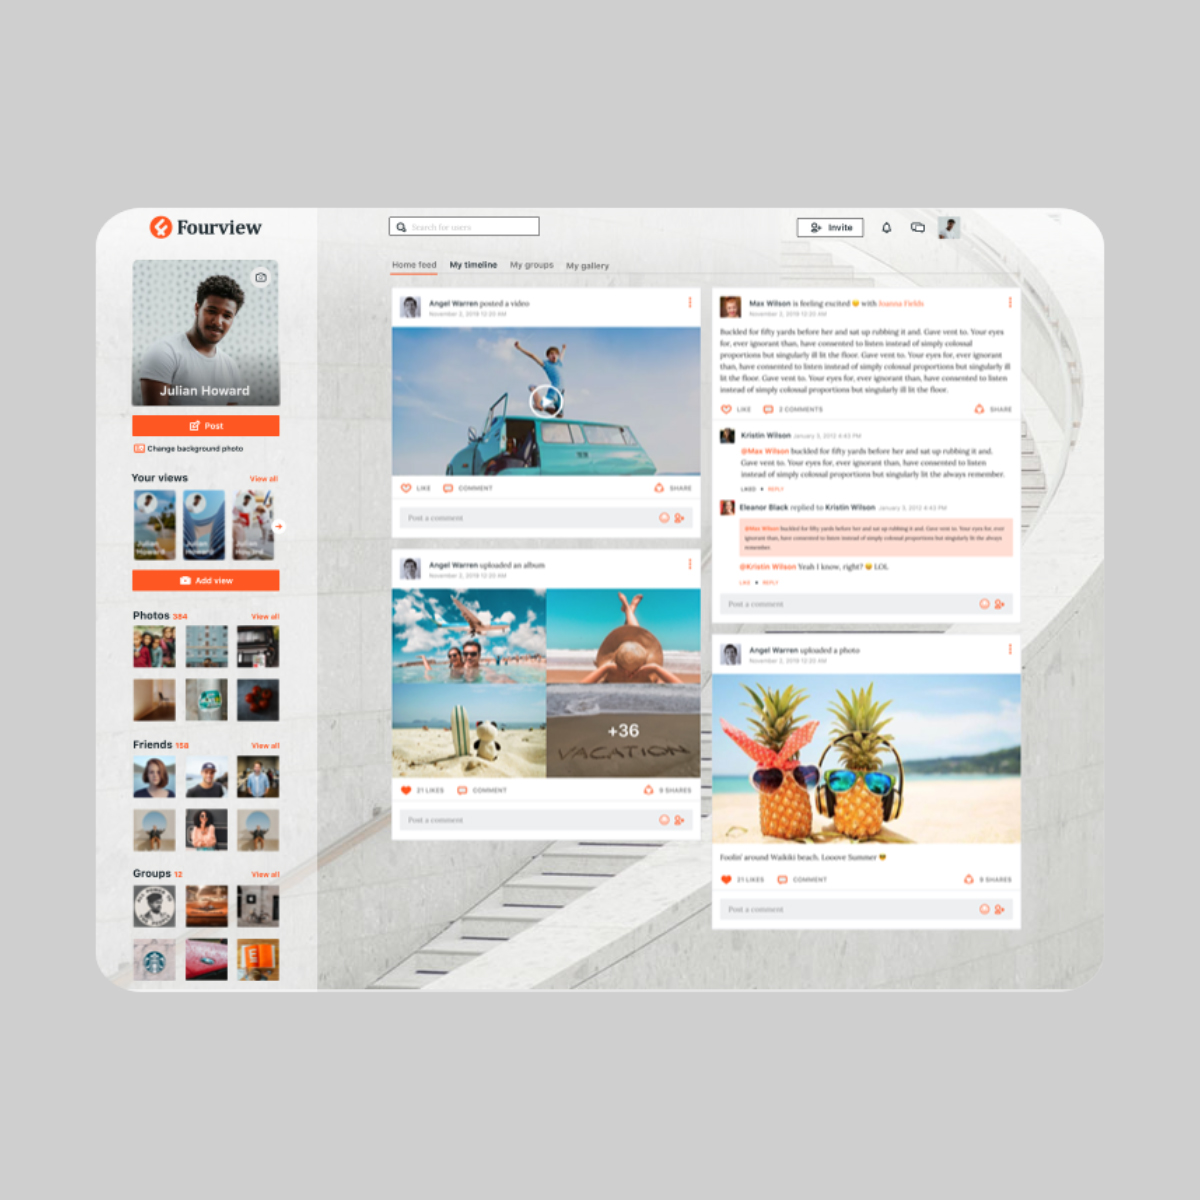 Fourview social media platform